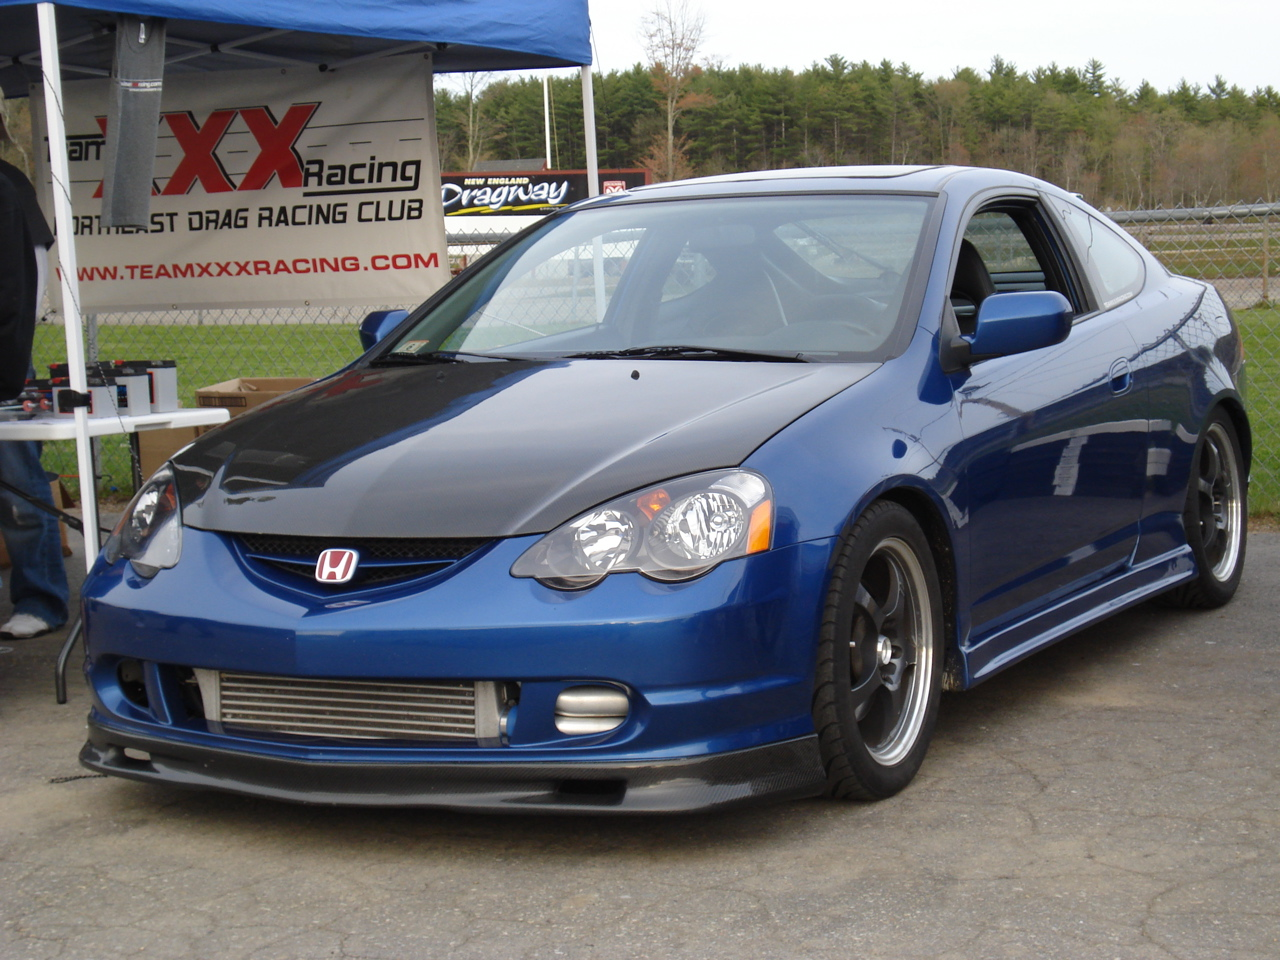 Acura RSX Cars Best Wallpaper Cars Wallpaper - Acura rsx for sale near me